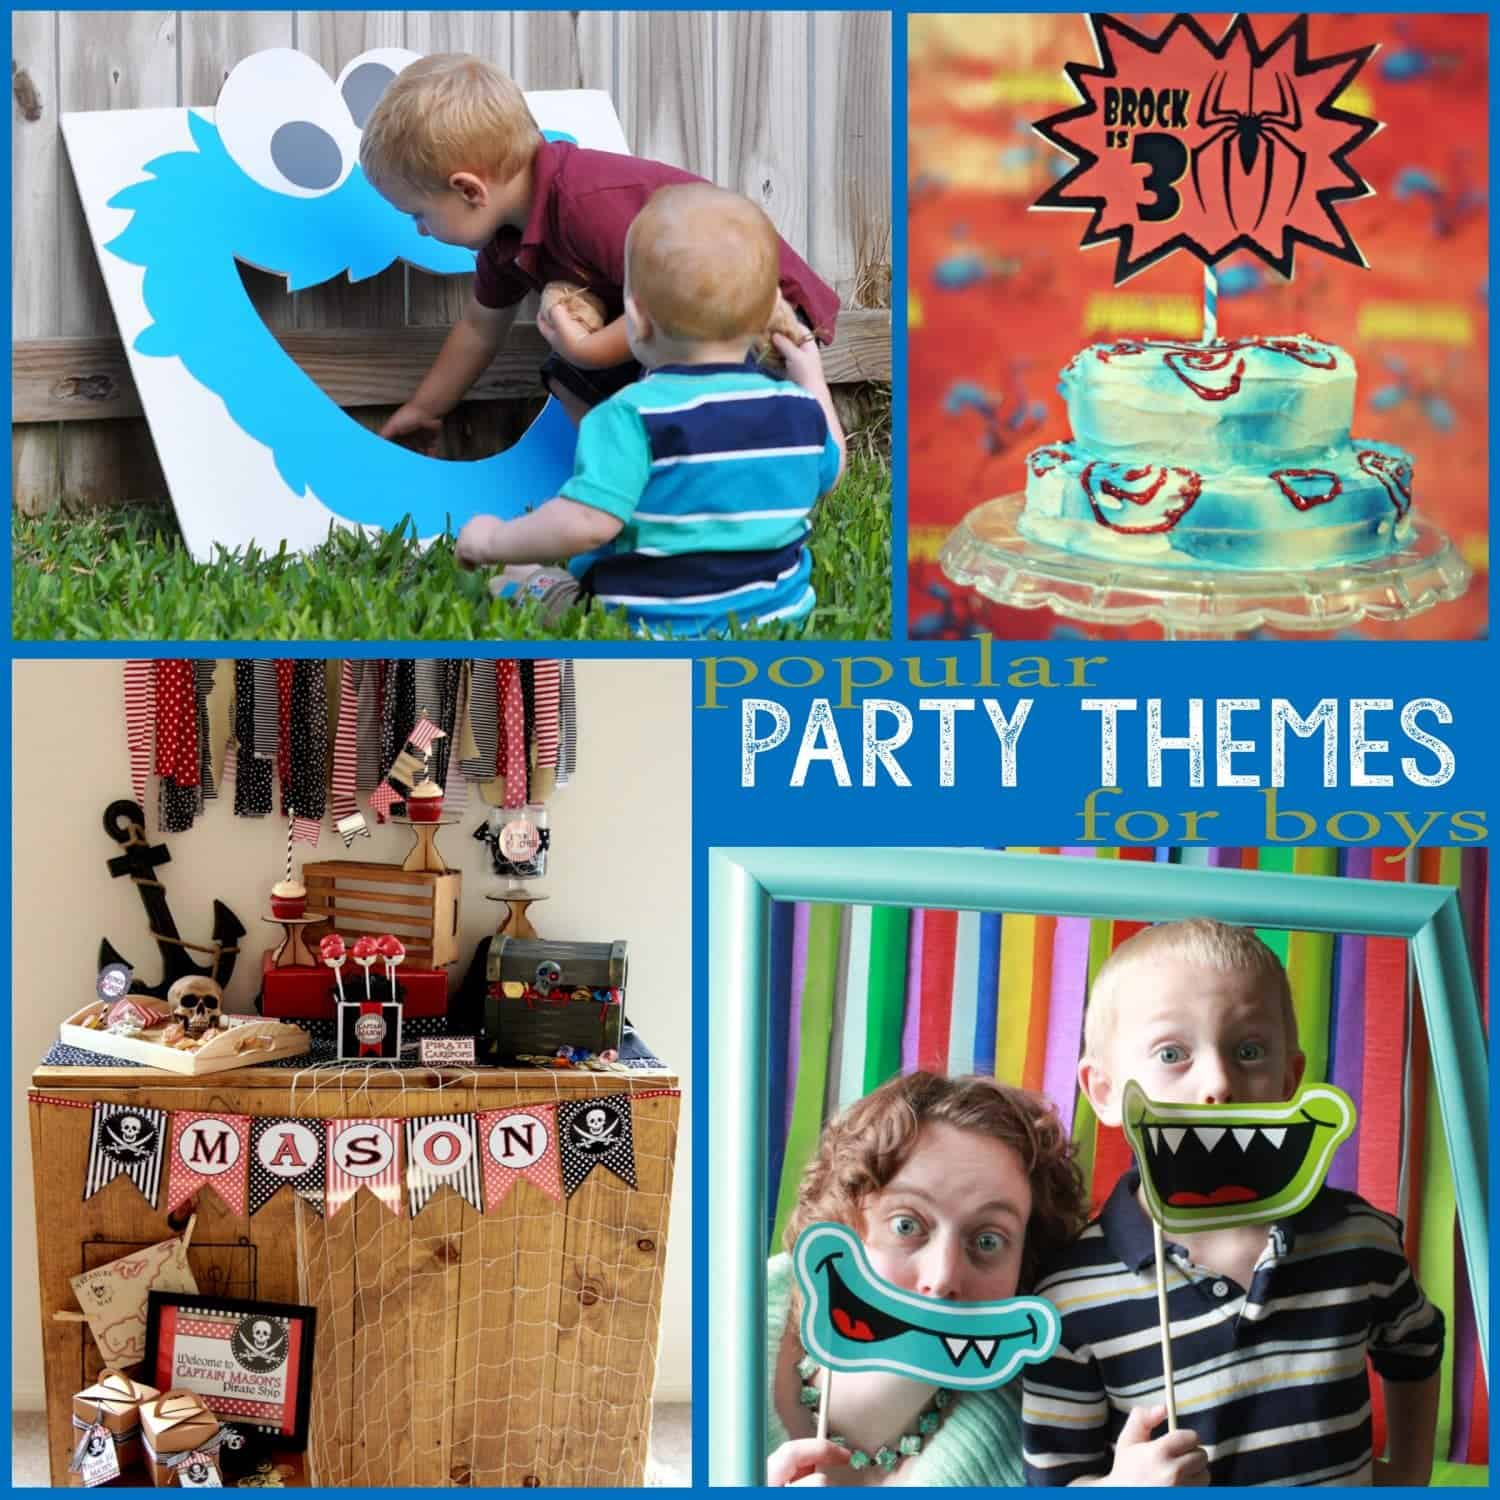 Trends: Popular Party Themes for Boys (Part 2)